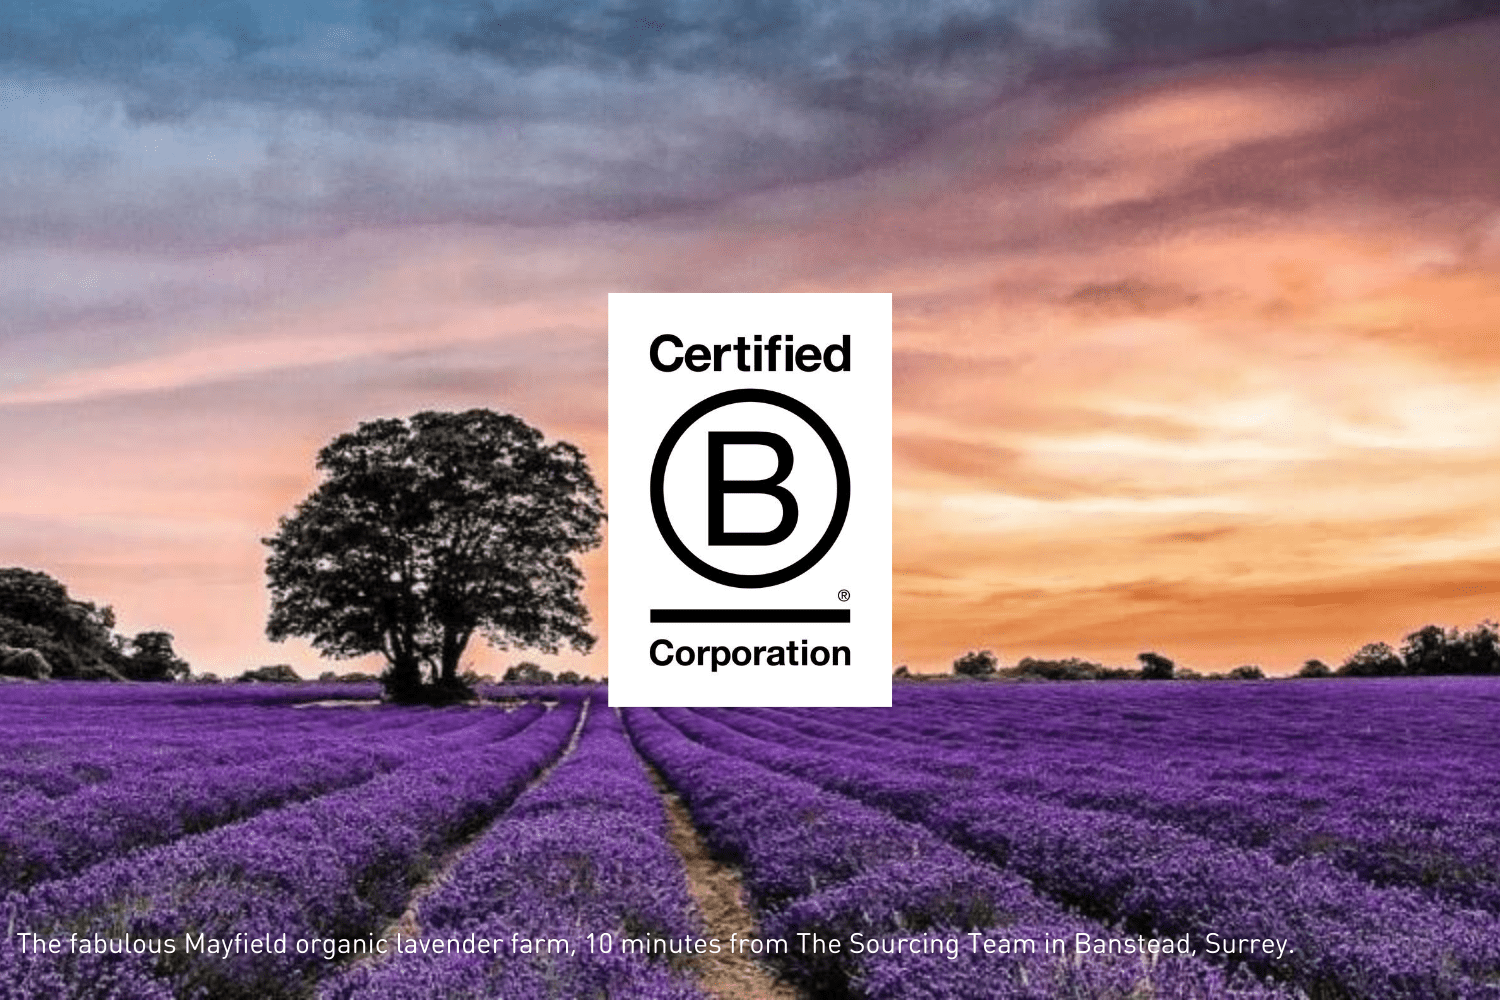 The Sourcing Team are delighted to become certified B Corp